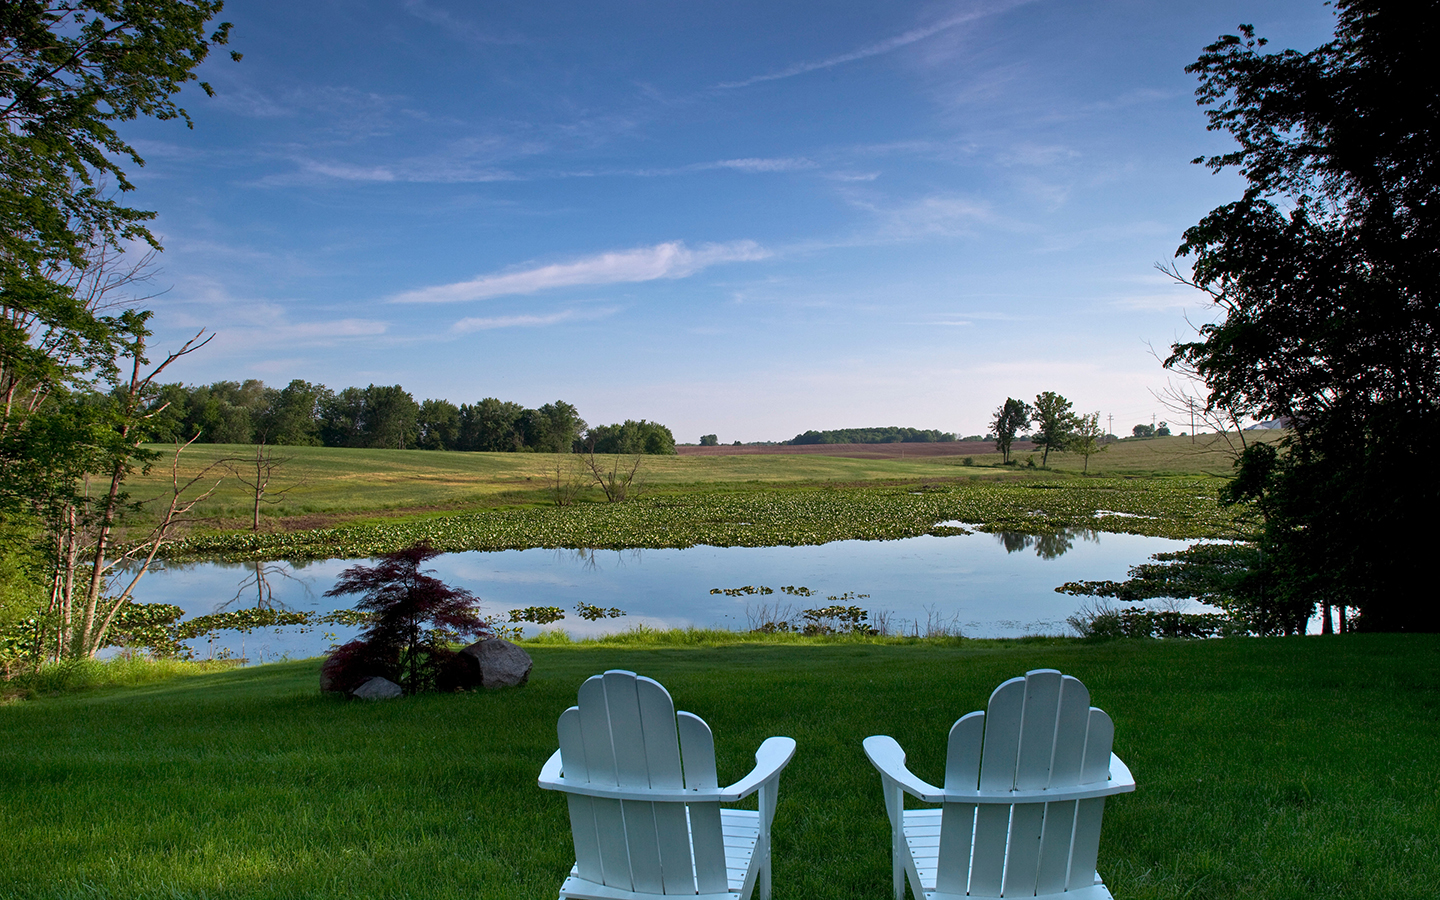 Two white lawn chairs overlooking a pond